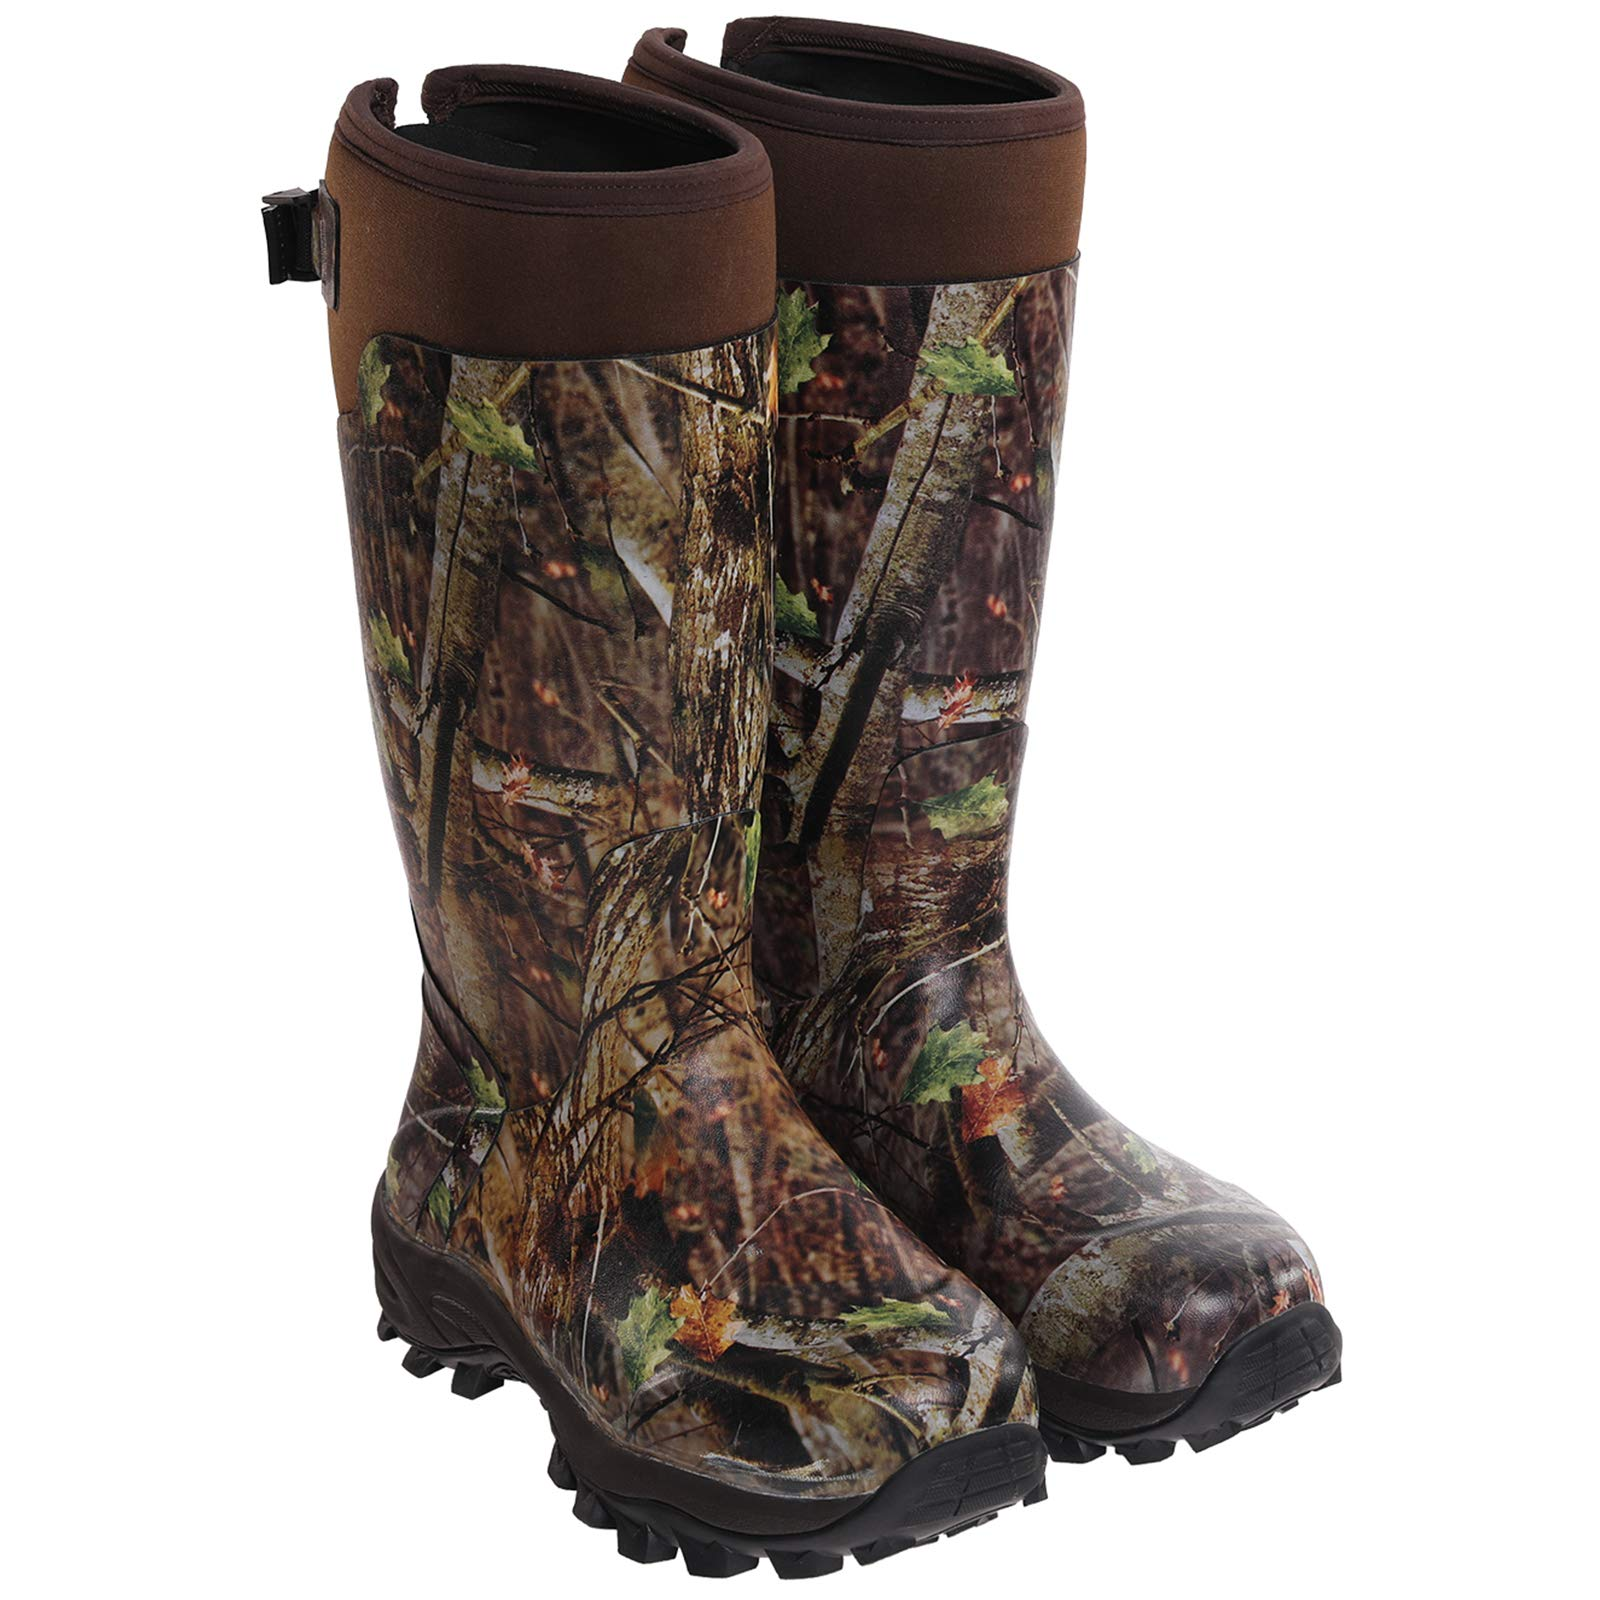 Hisea Hunting Boots for Men Waterproof Mens and Womens Rain Boots Neoprene Rubber Insulated Shoes Camo by Hisea